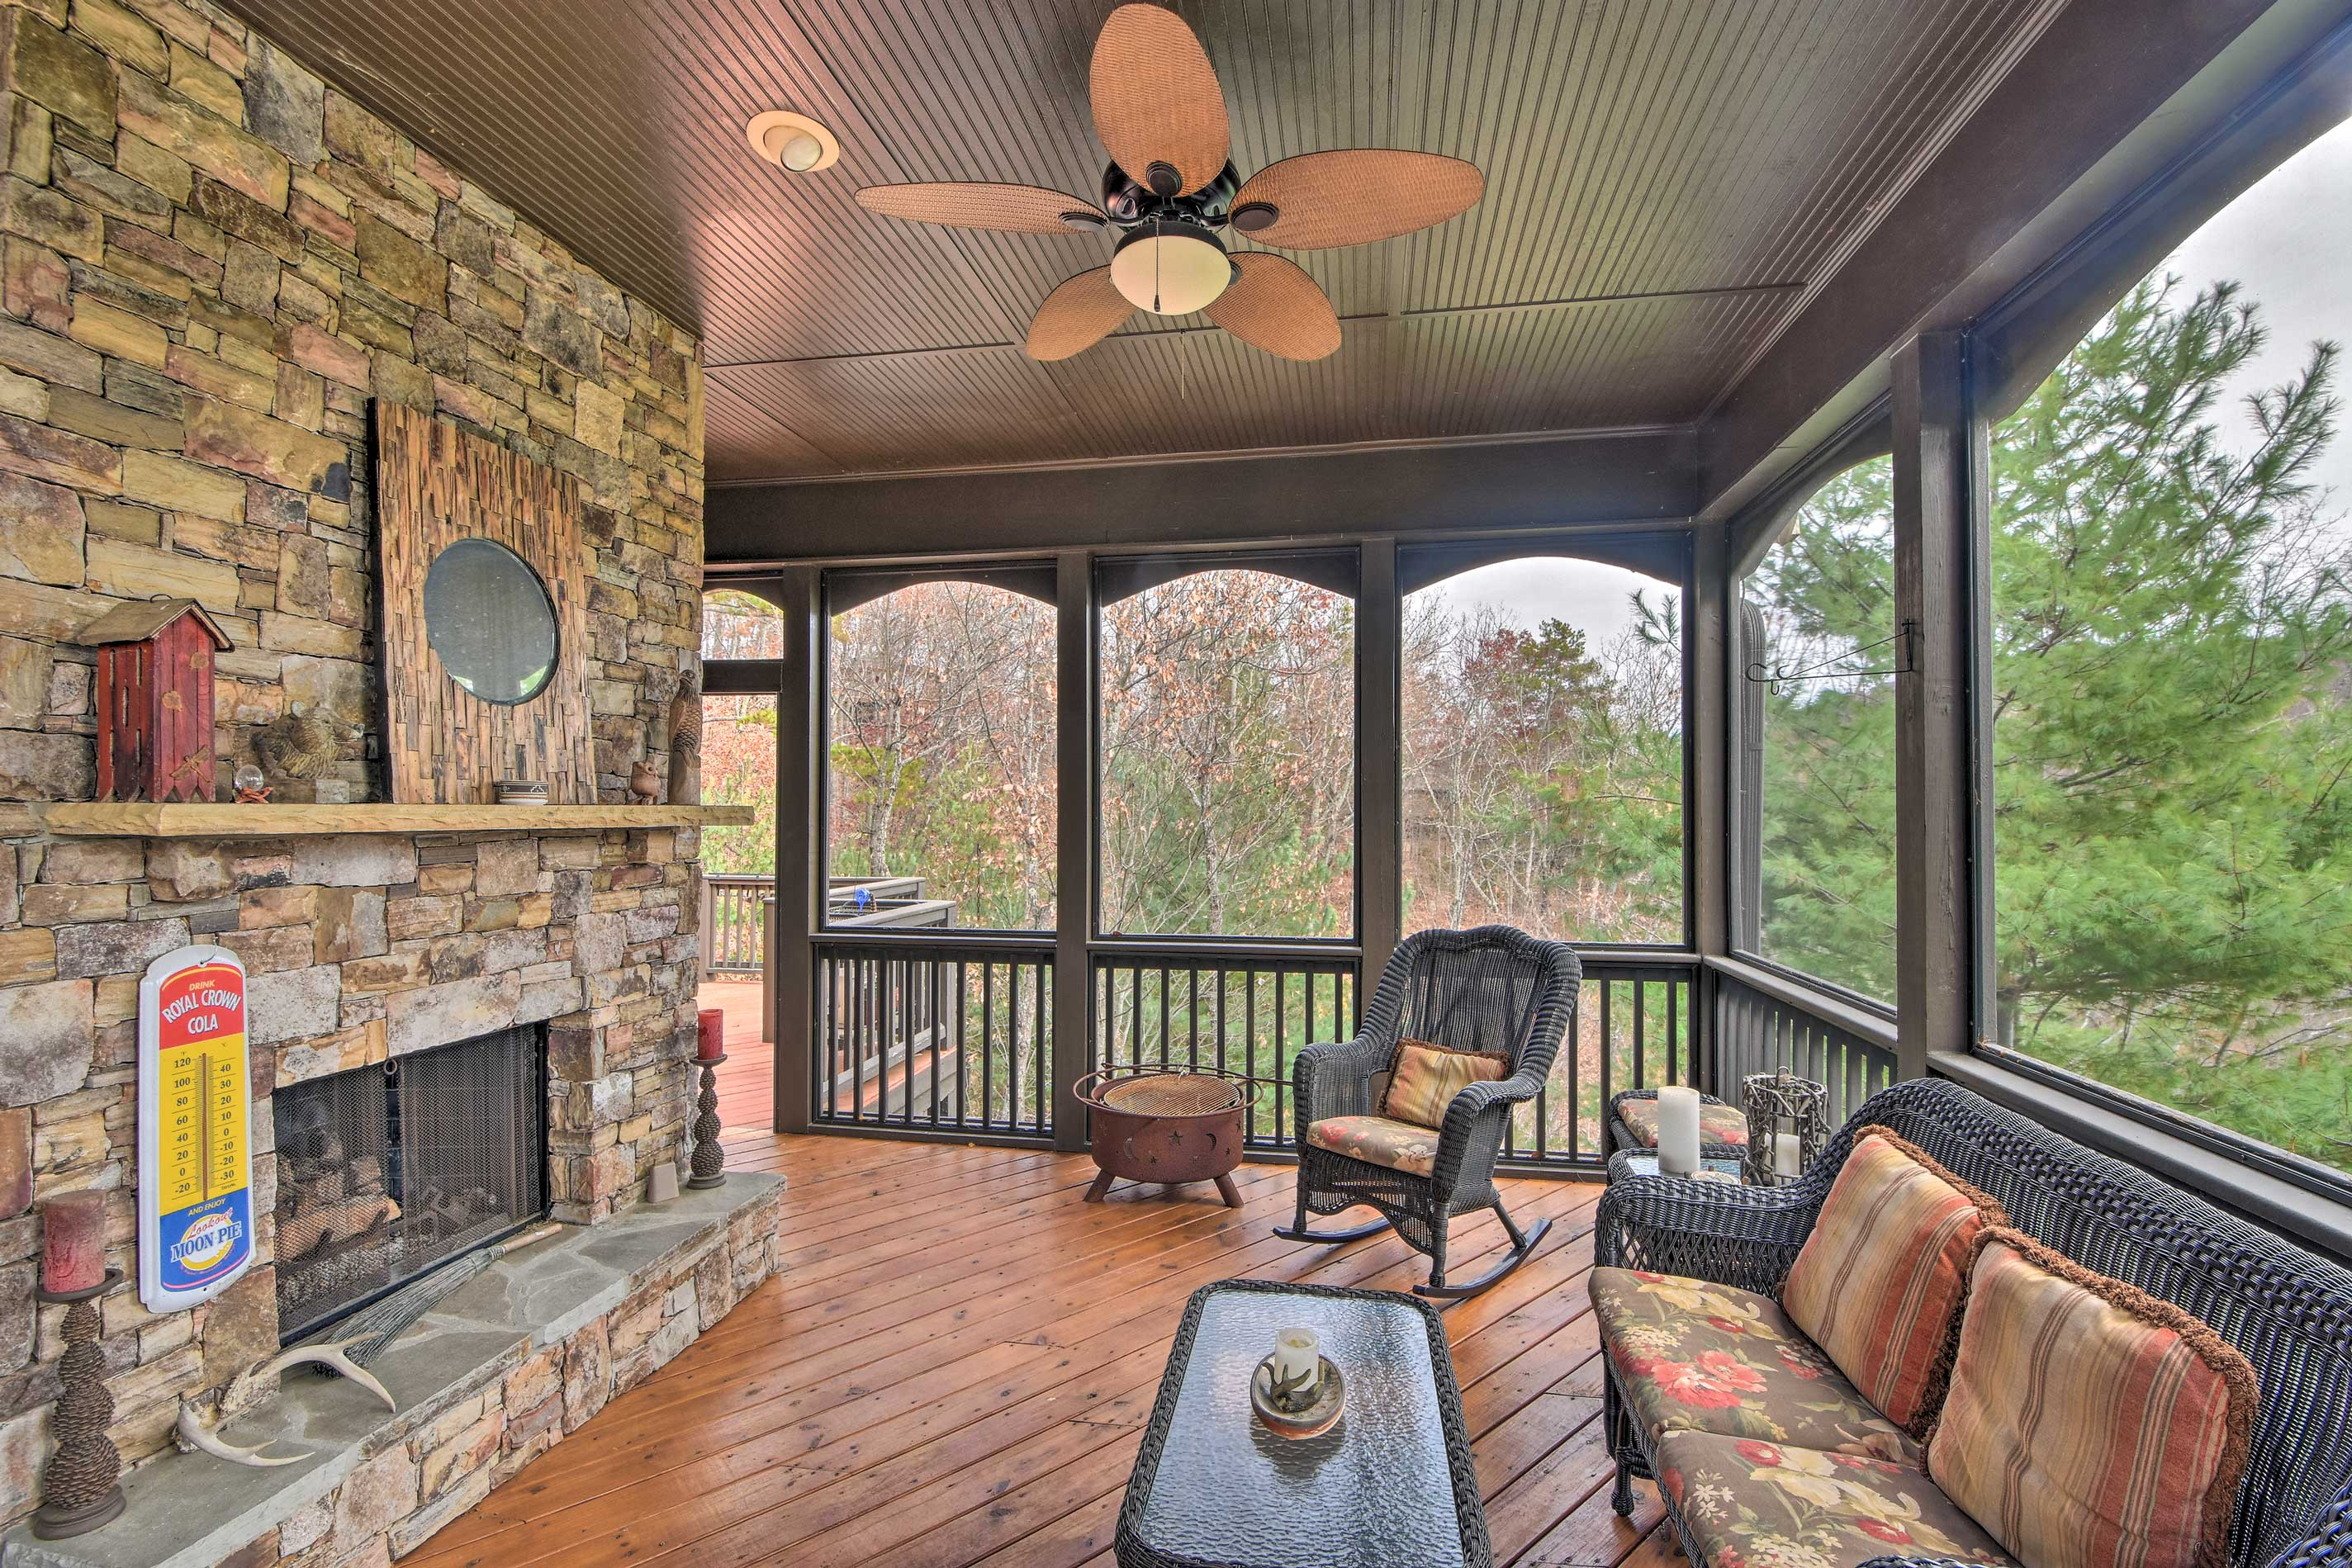 In the evenings, gather in the screened porch for a moment of solitude.